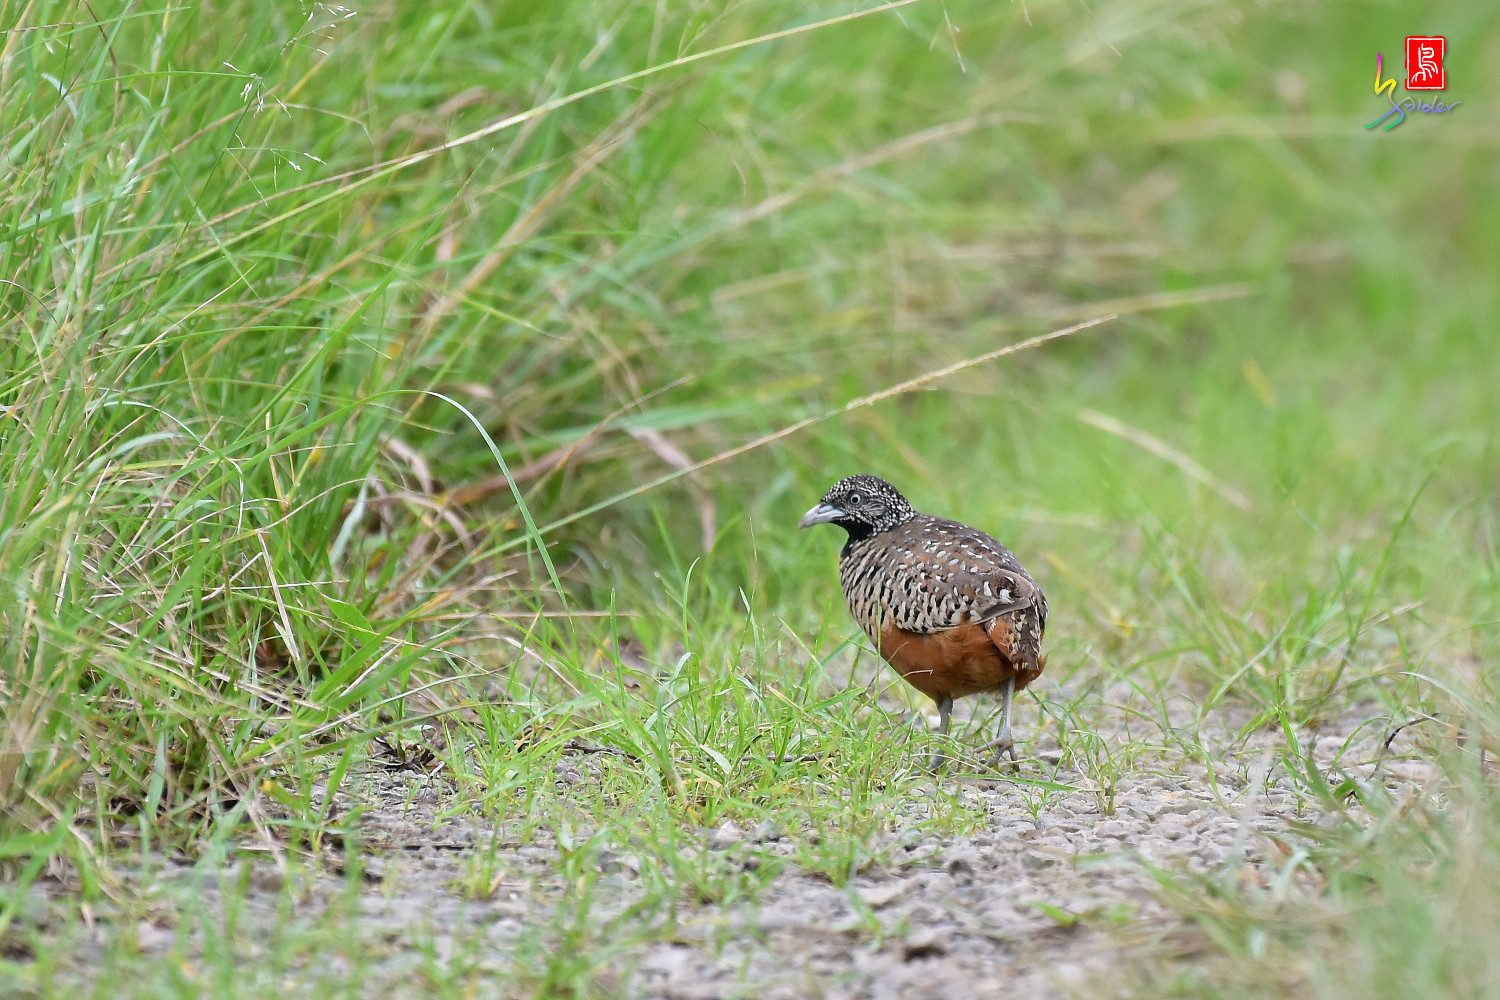 Barred_Buttonquail_4302